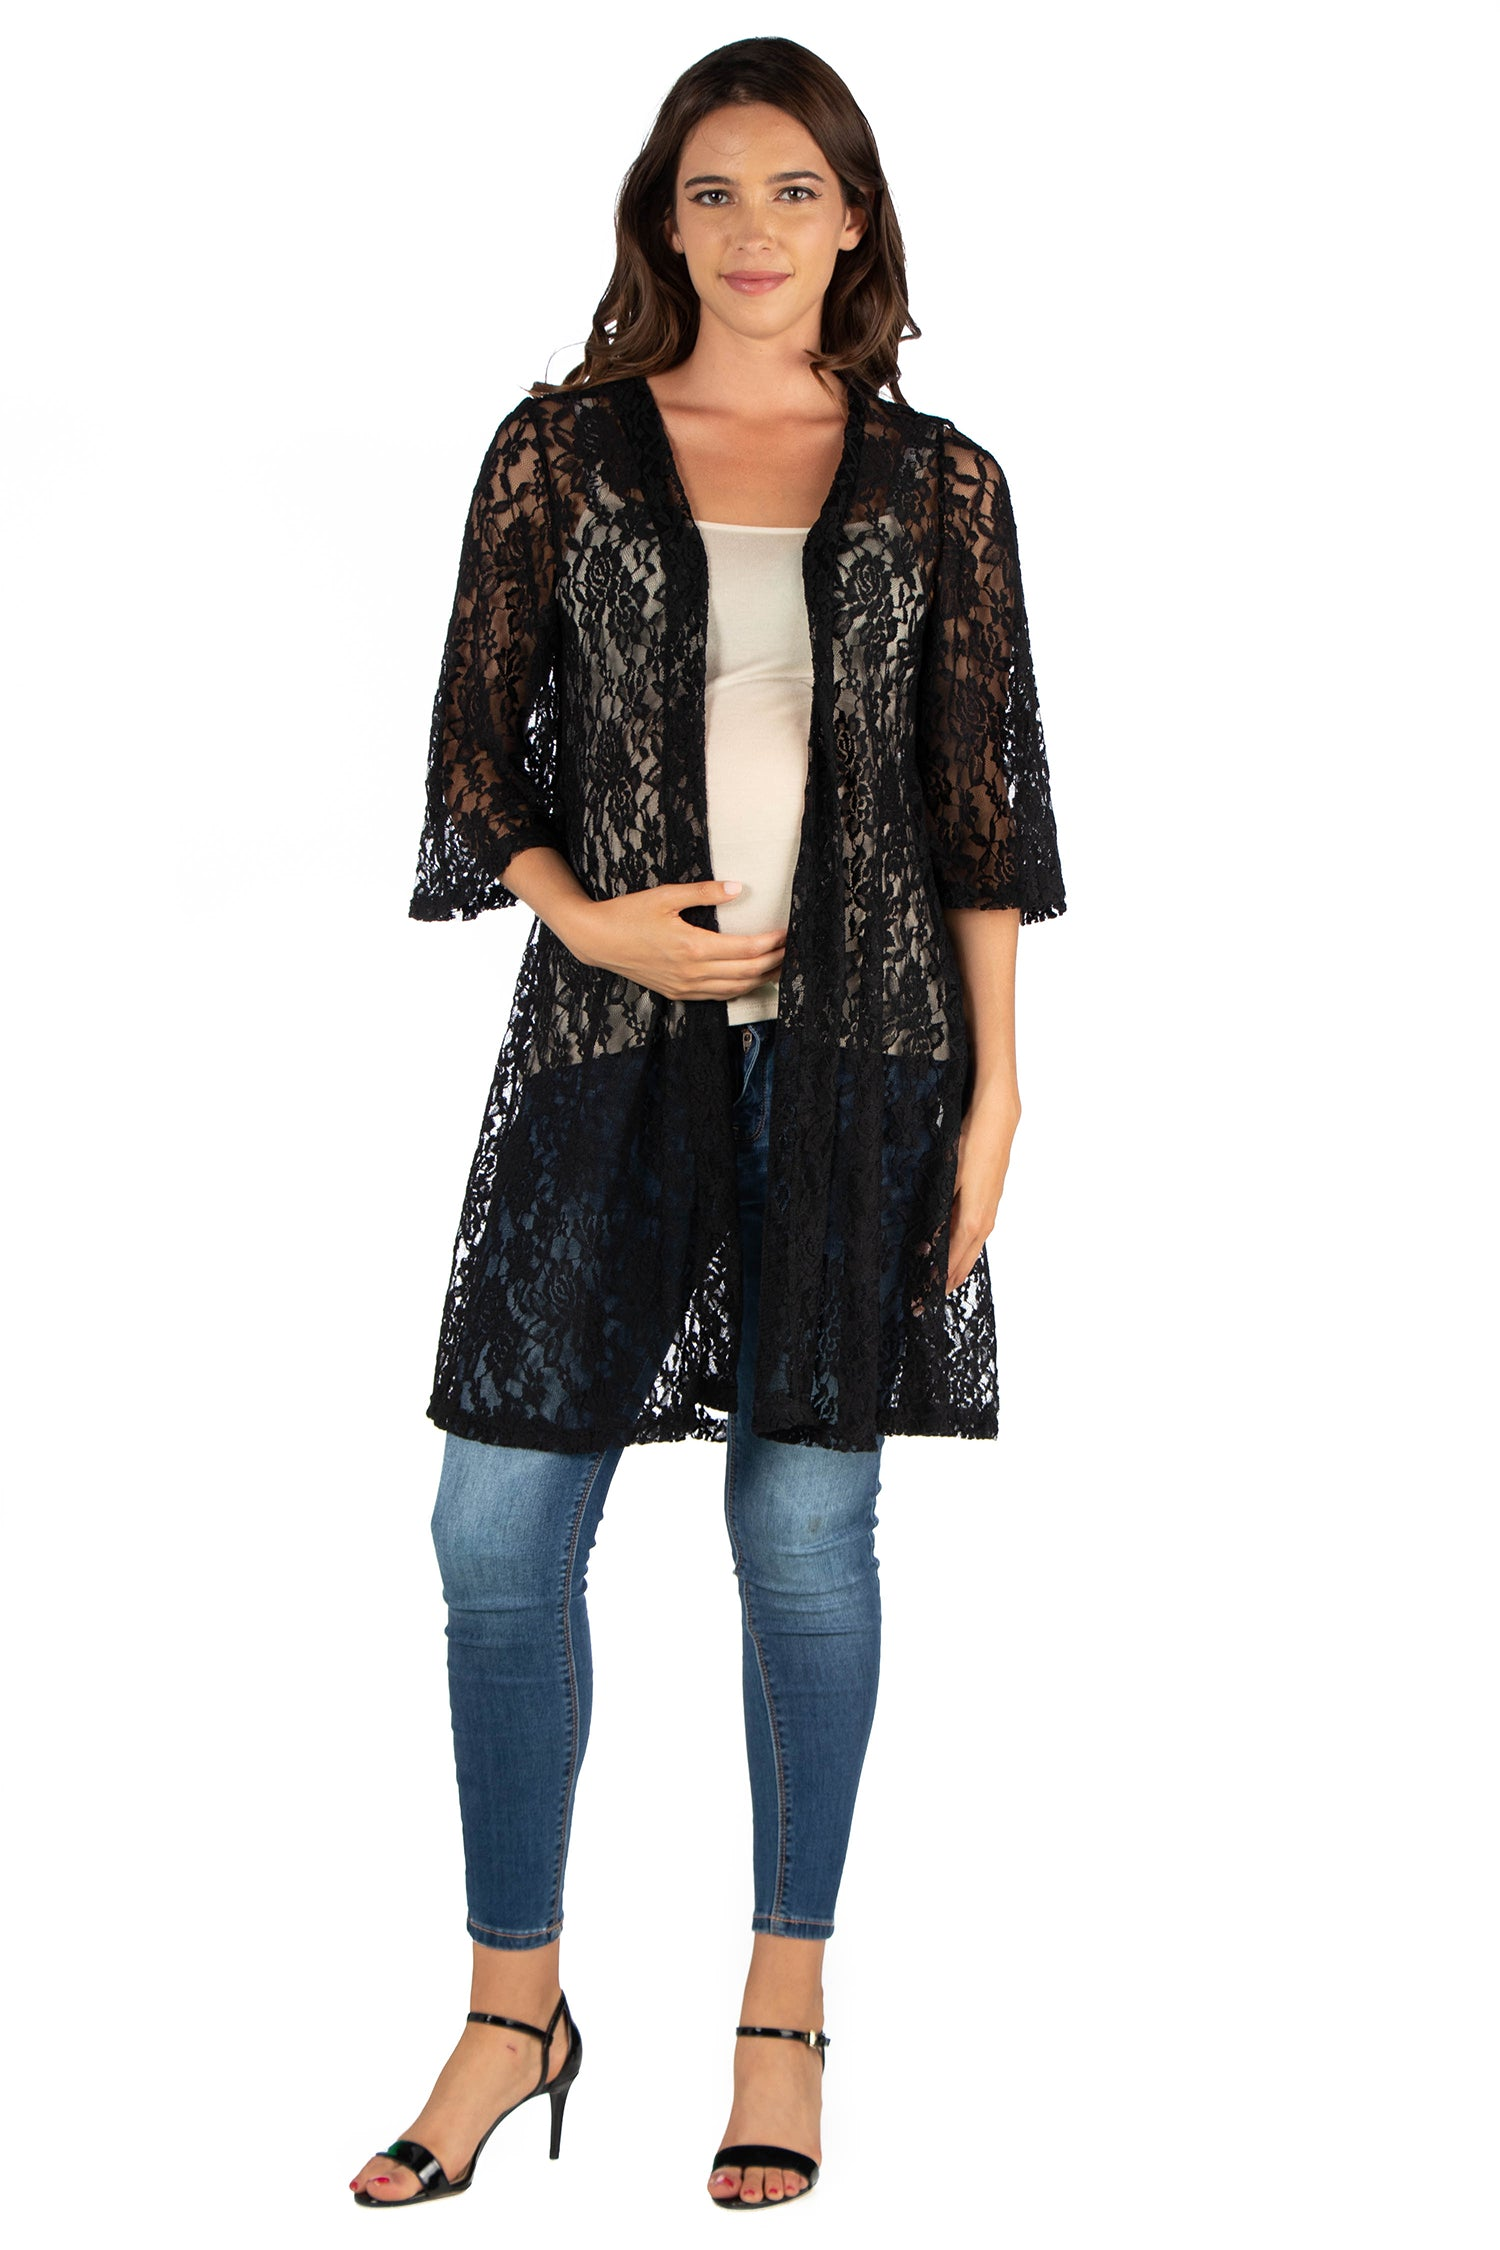 24seven Comfort Apparel Knee Length Sheer Black Lace Maternity Cardigan-SHRUGS-24Seven Comfort Apparel-BLACK-S-24/7 Comfort Apparel